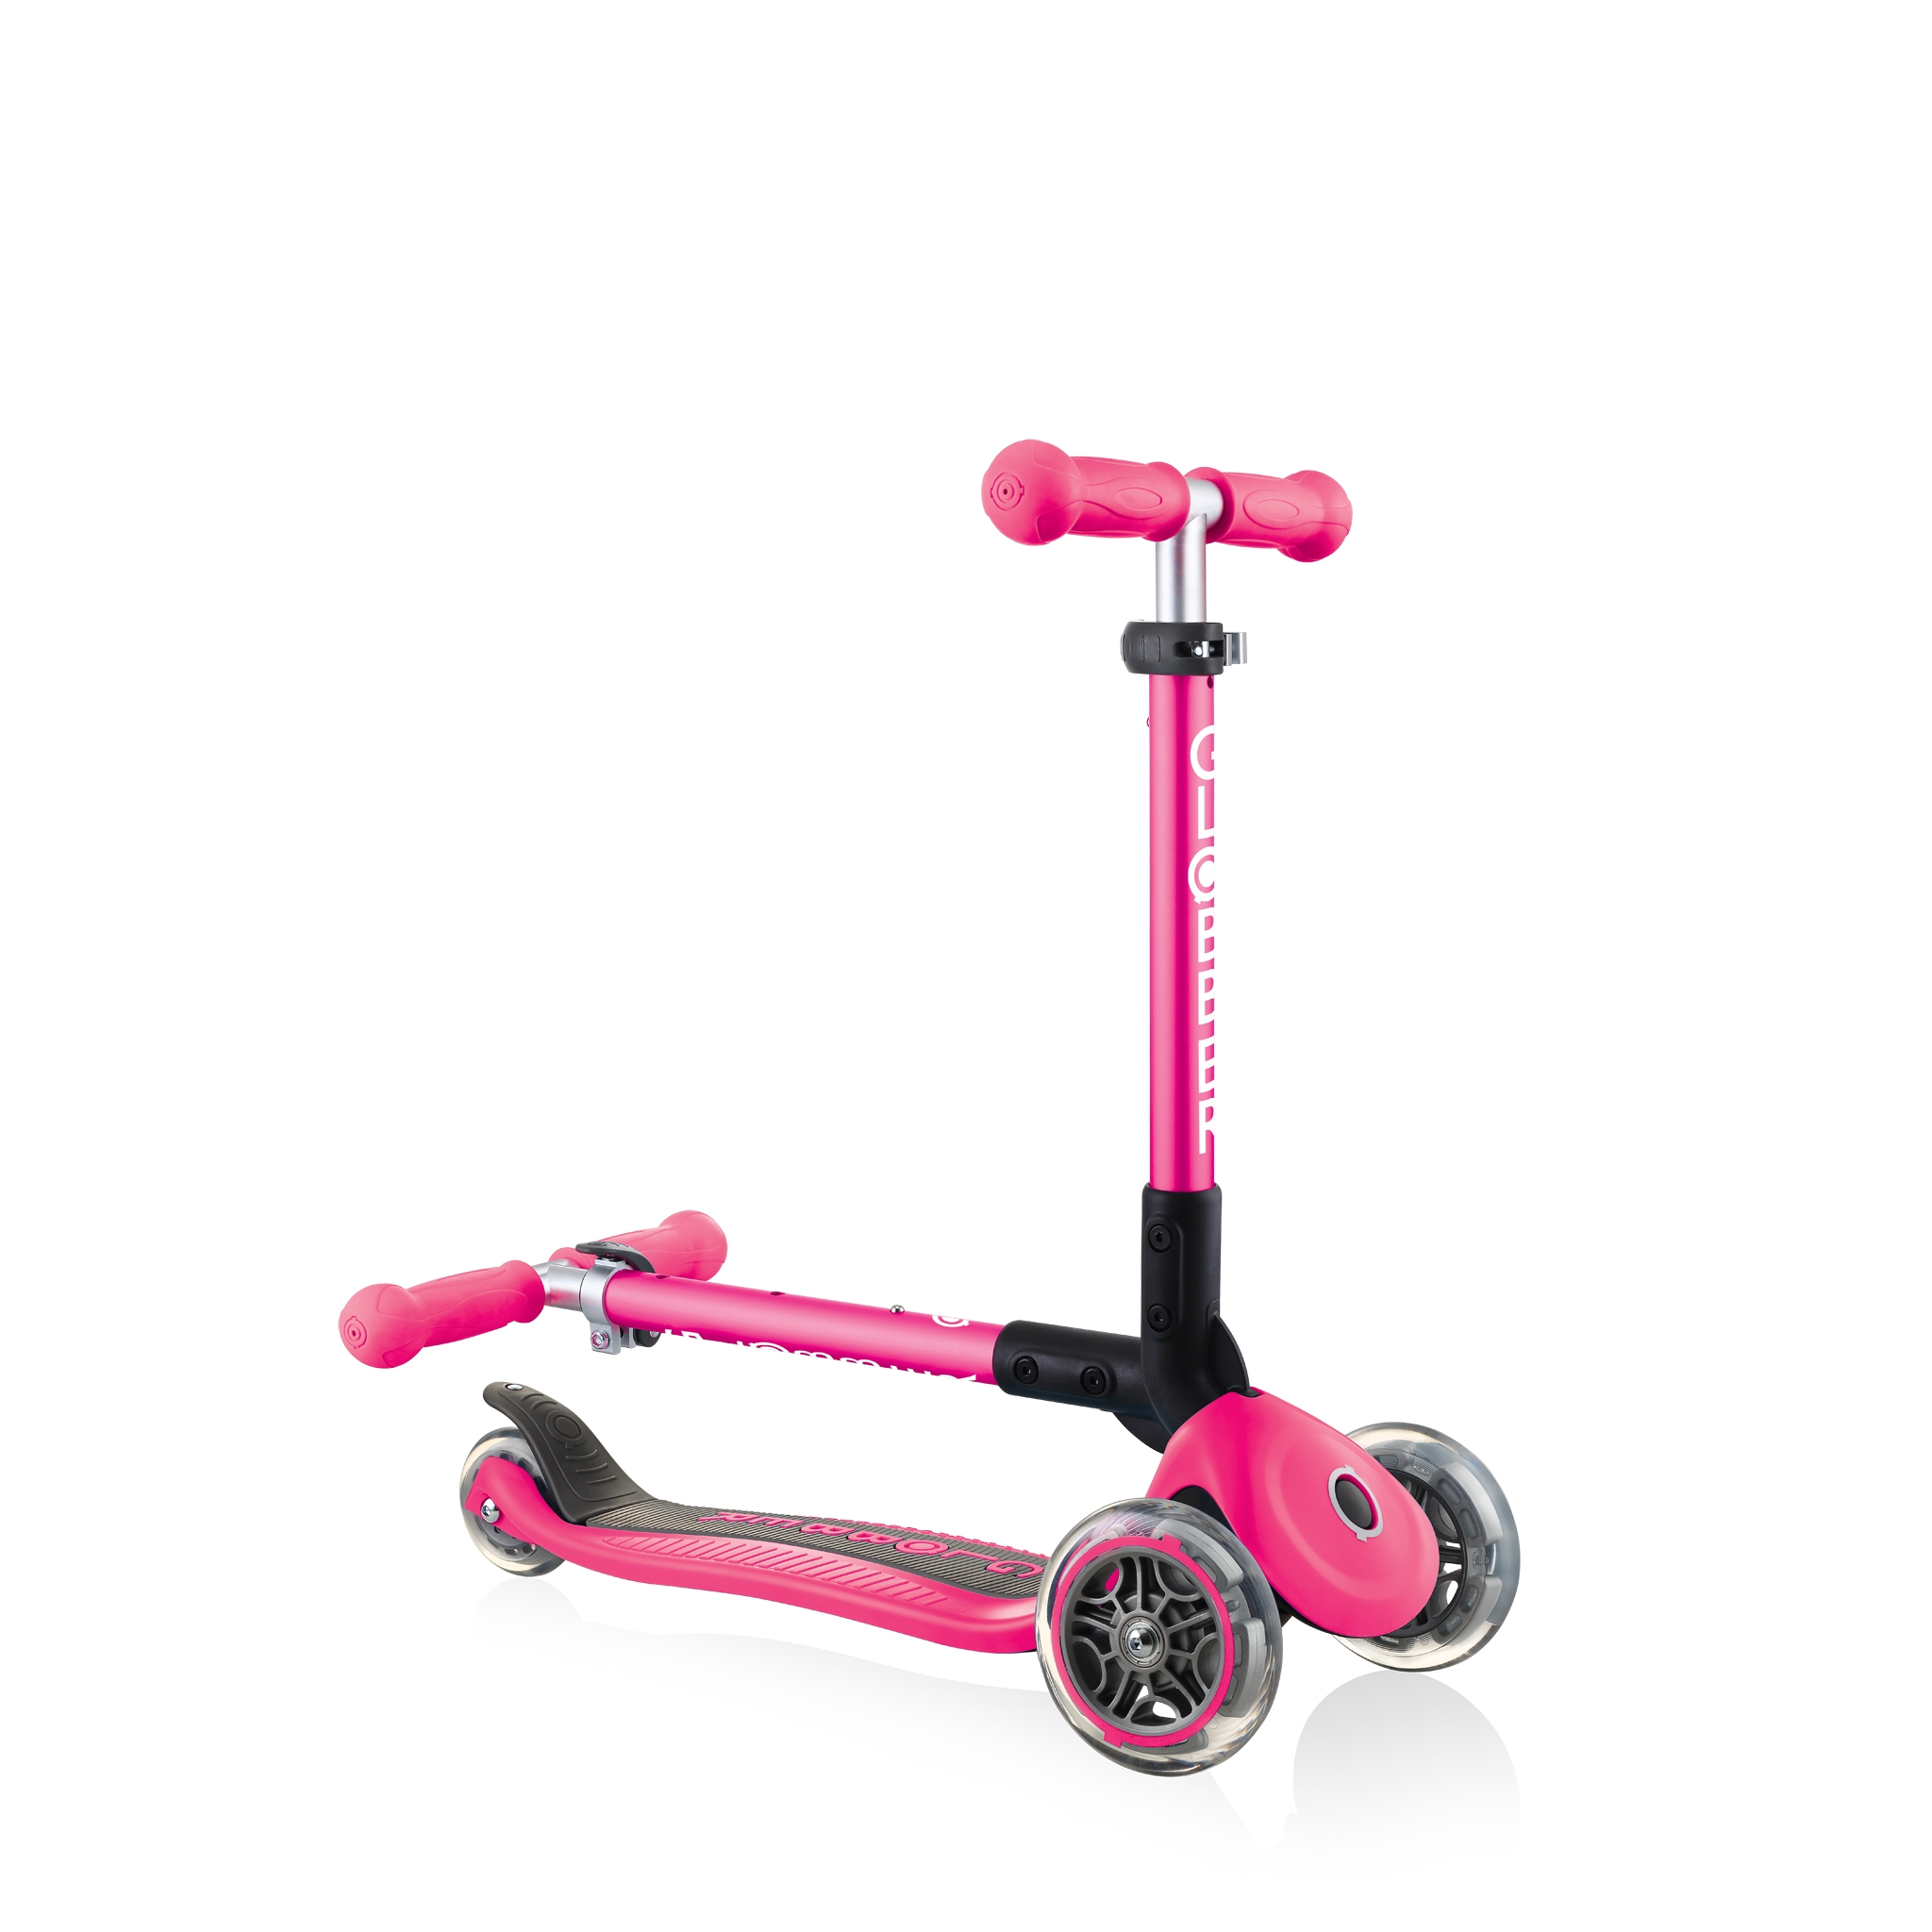 3-wheel-folding-scooter-for-toddlers-JUNIOR-FOLDABLE 2